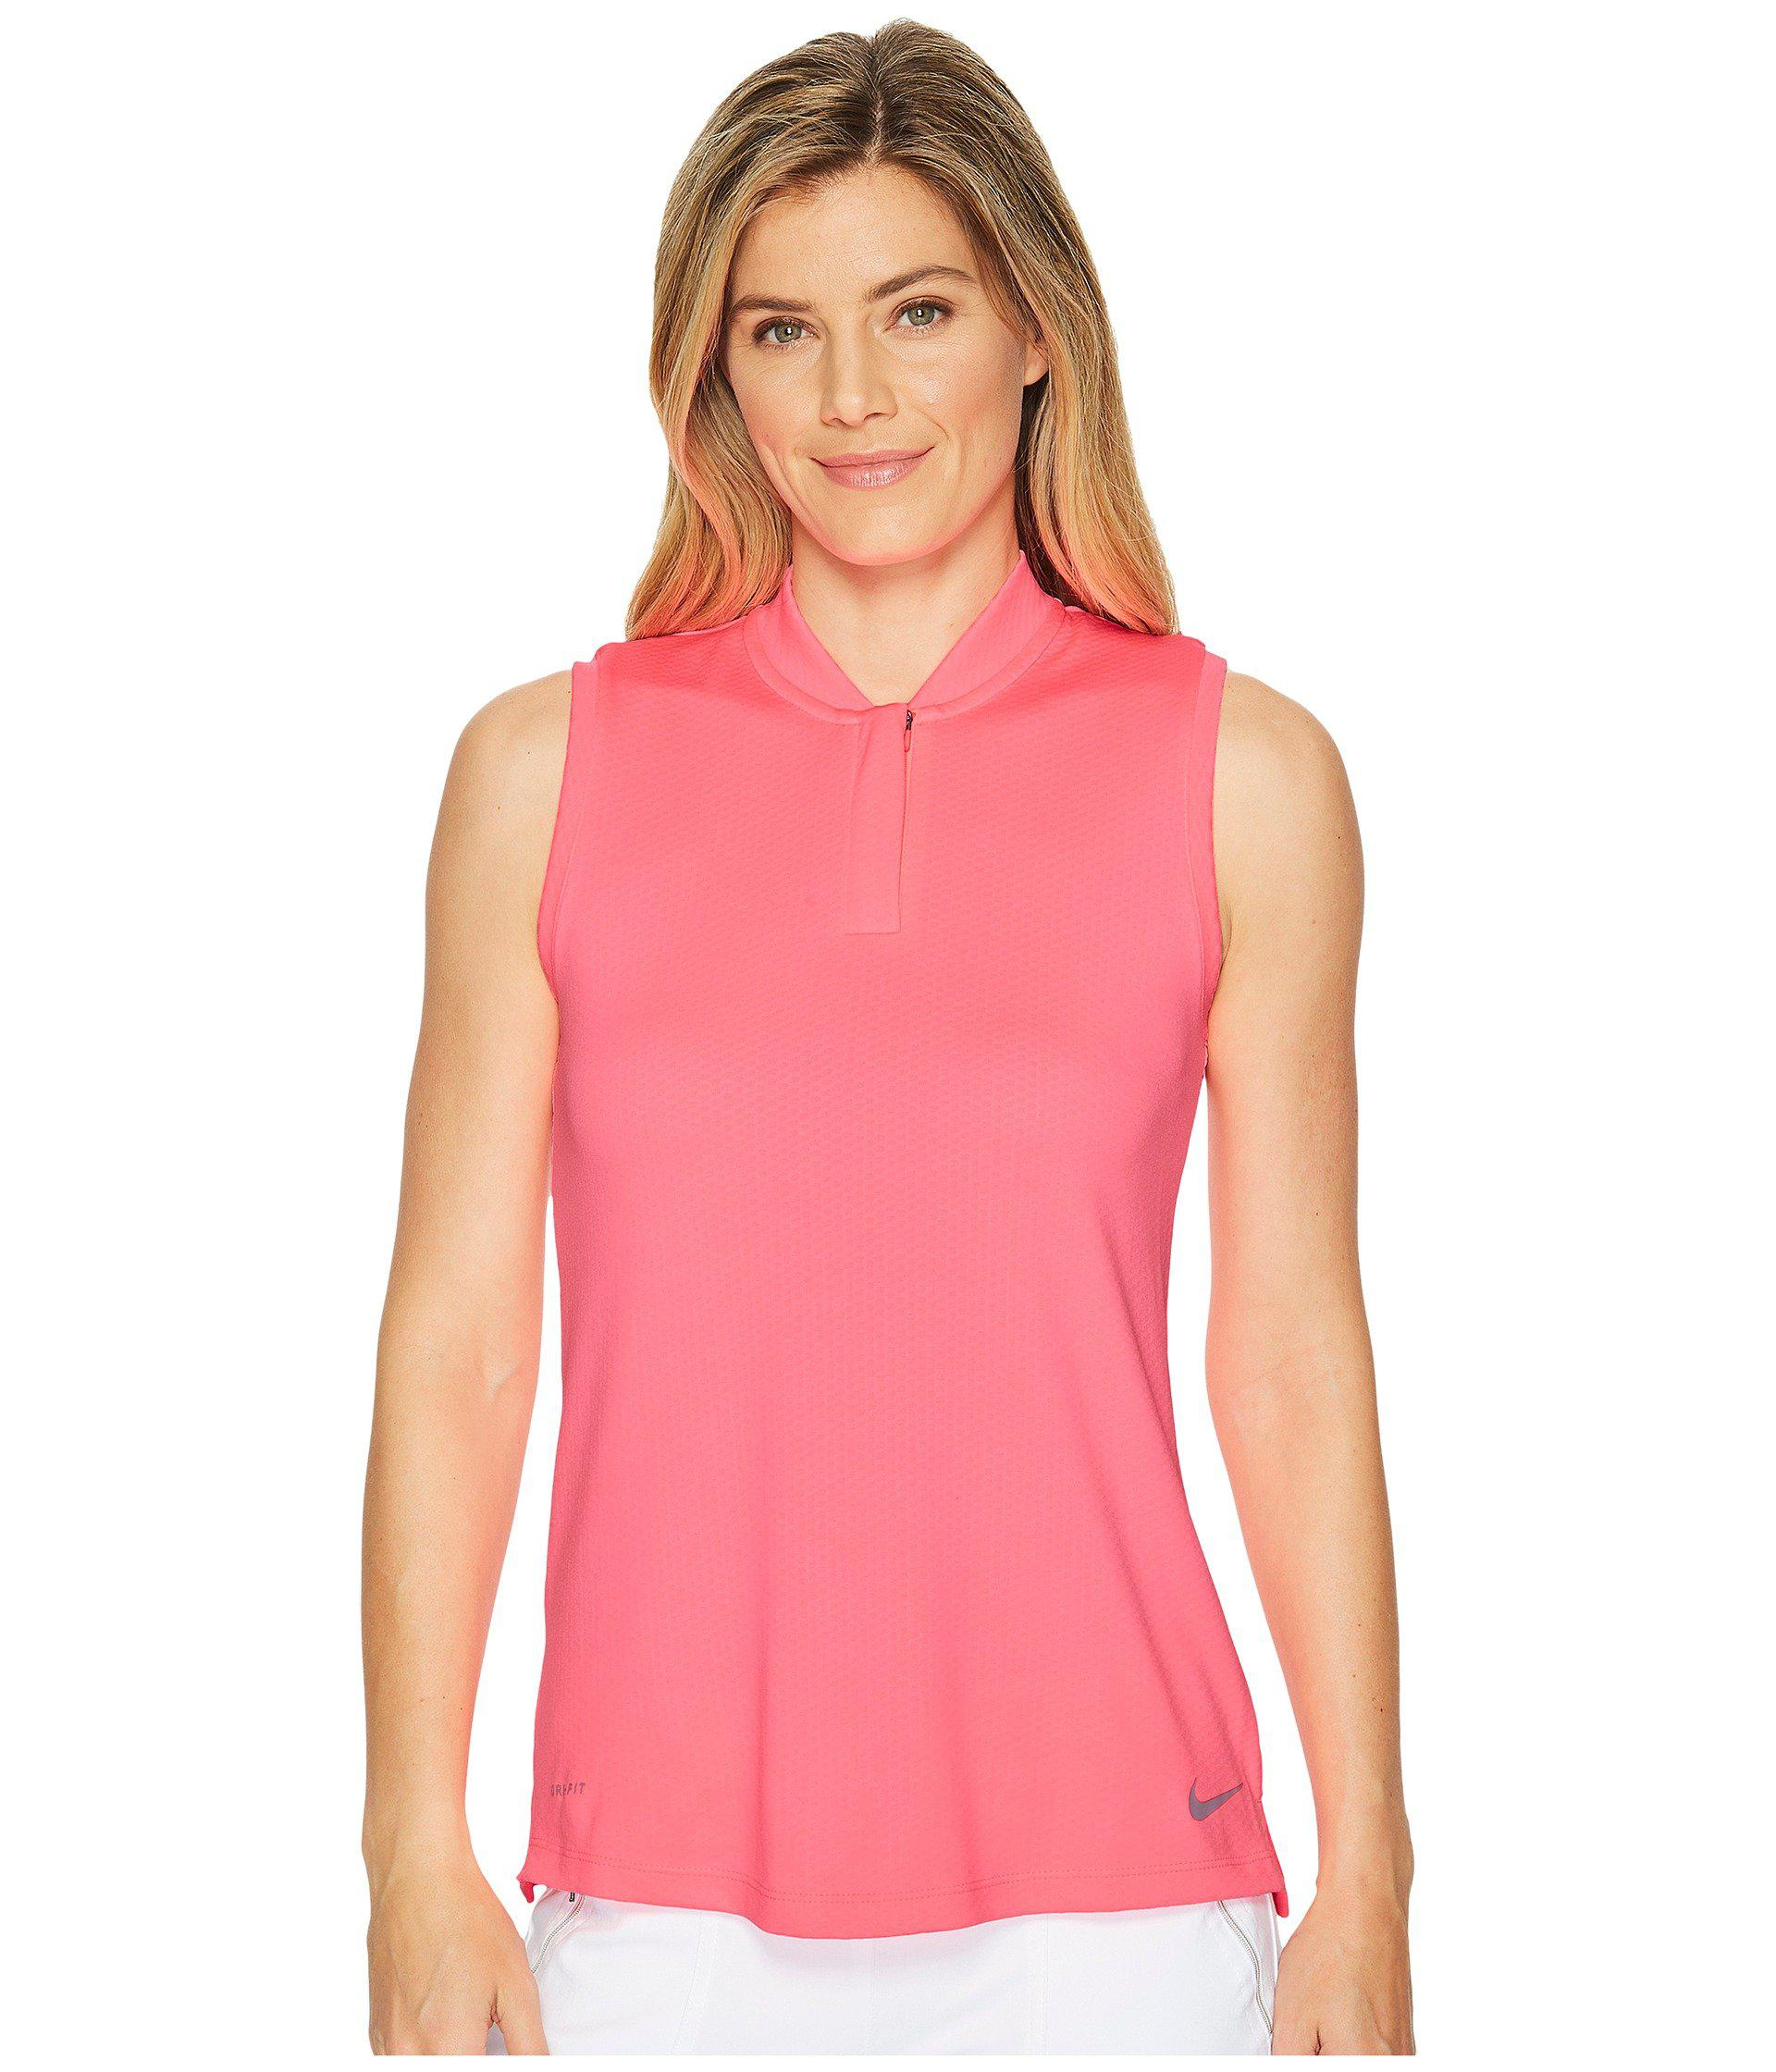 5ec6dec9 Lyst - Nike Dry Polo Sleeveless Blade in Pink - Save 25%